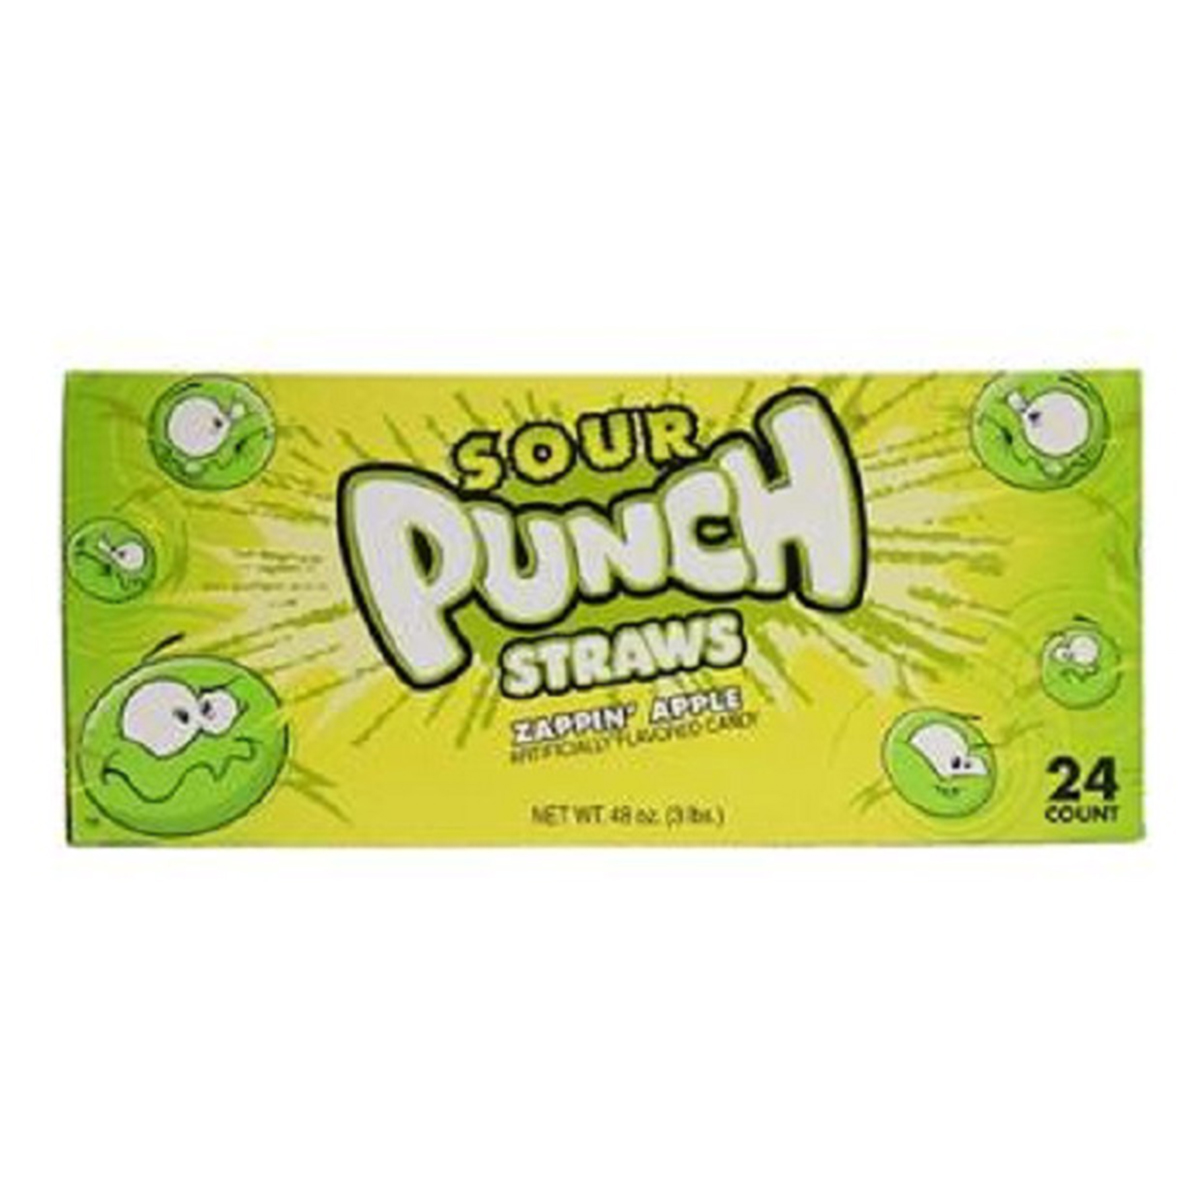 Product Of Sour Punch Straws, Zappin Apple, Count 24 (2 oz) - Sugar Candy / Grab Varieties & Flavors